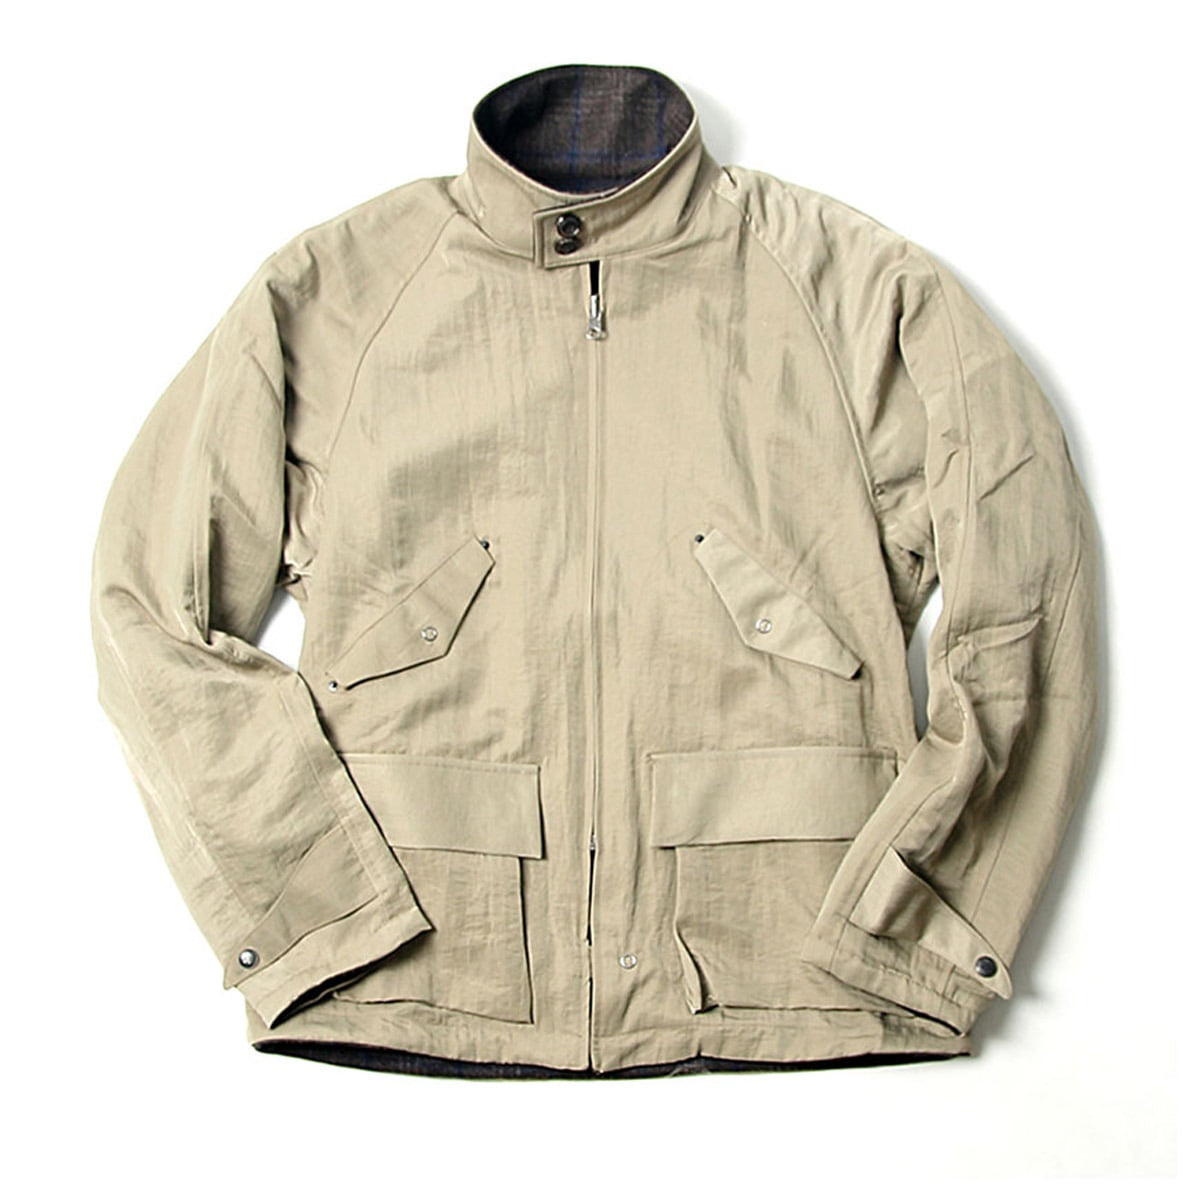 [BEHEAVYER] BHR TWO FACE BLOUSON 'BEIGE'